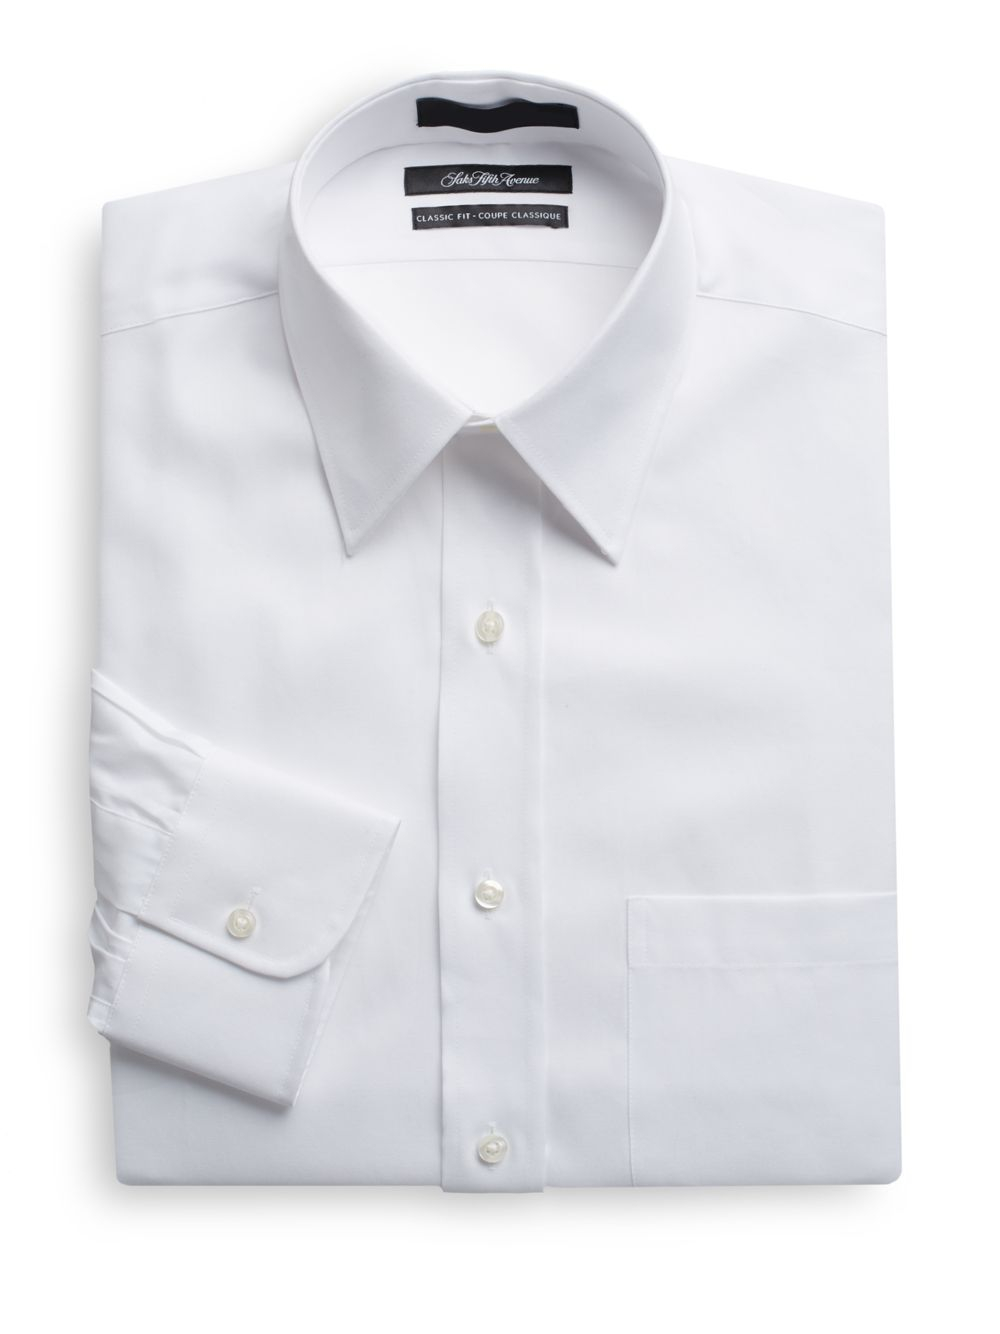 Saks Fifth Avenue Classic Fit Cotton Dress Shirt In White